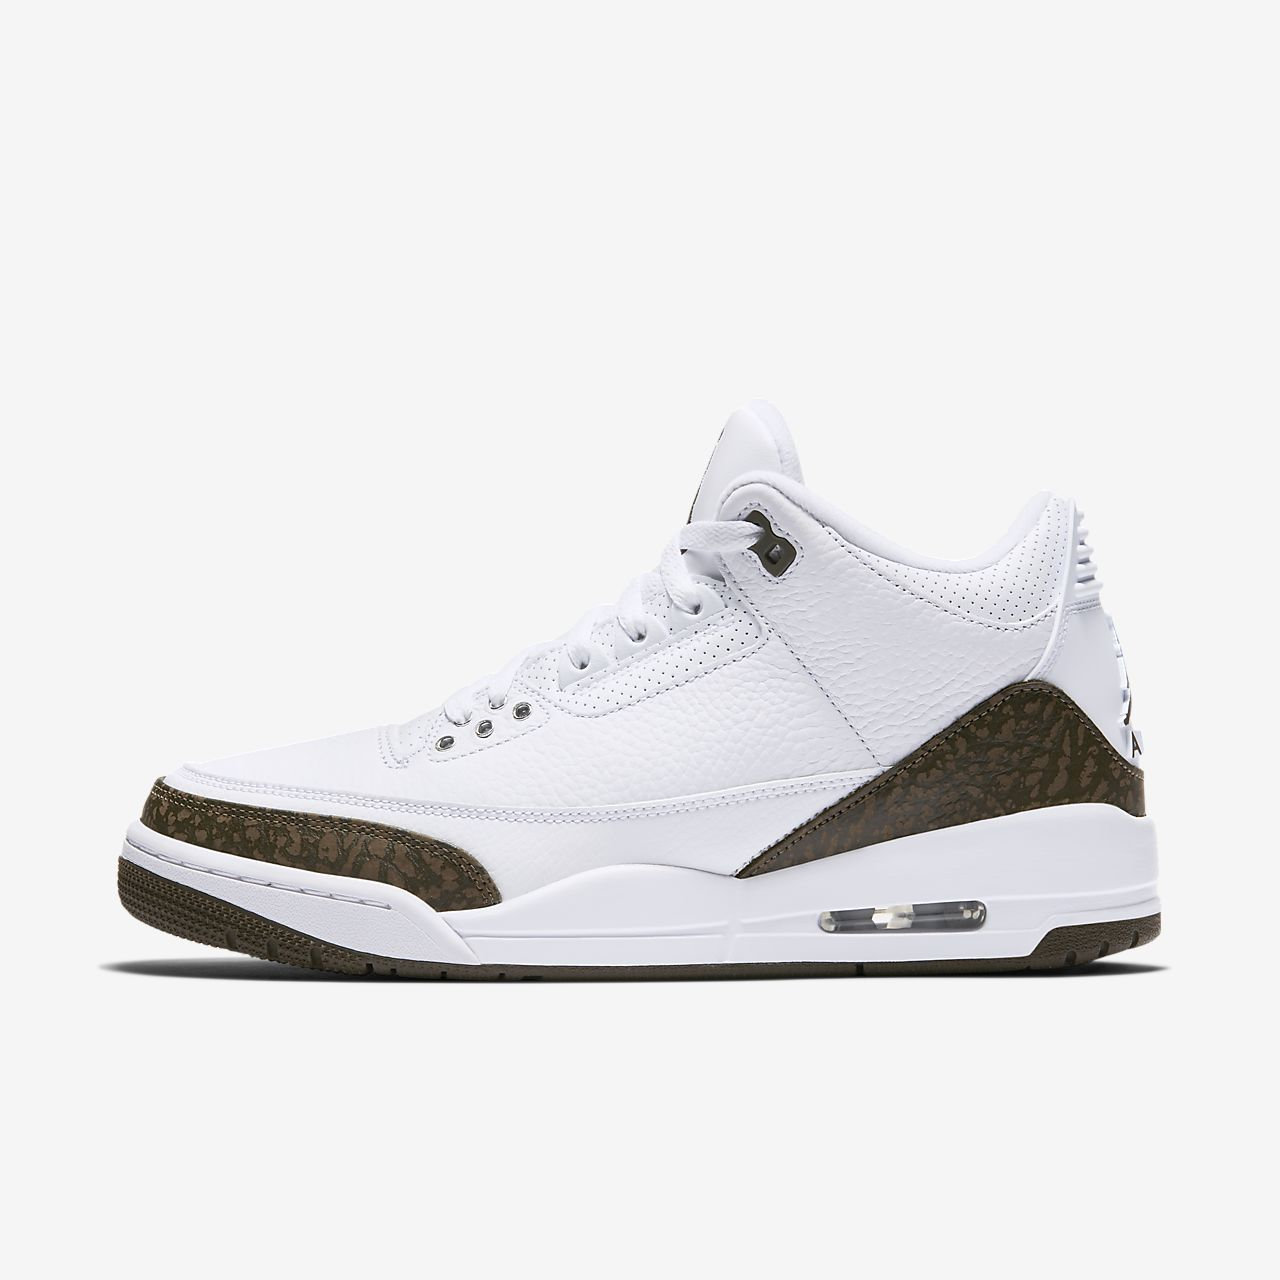 54ae6d0104a Air Jordan 3 Retro Men s Shoe. Nike.com